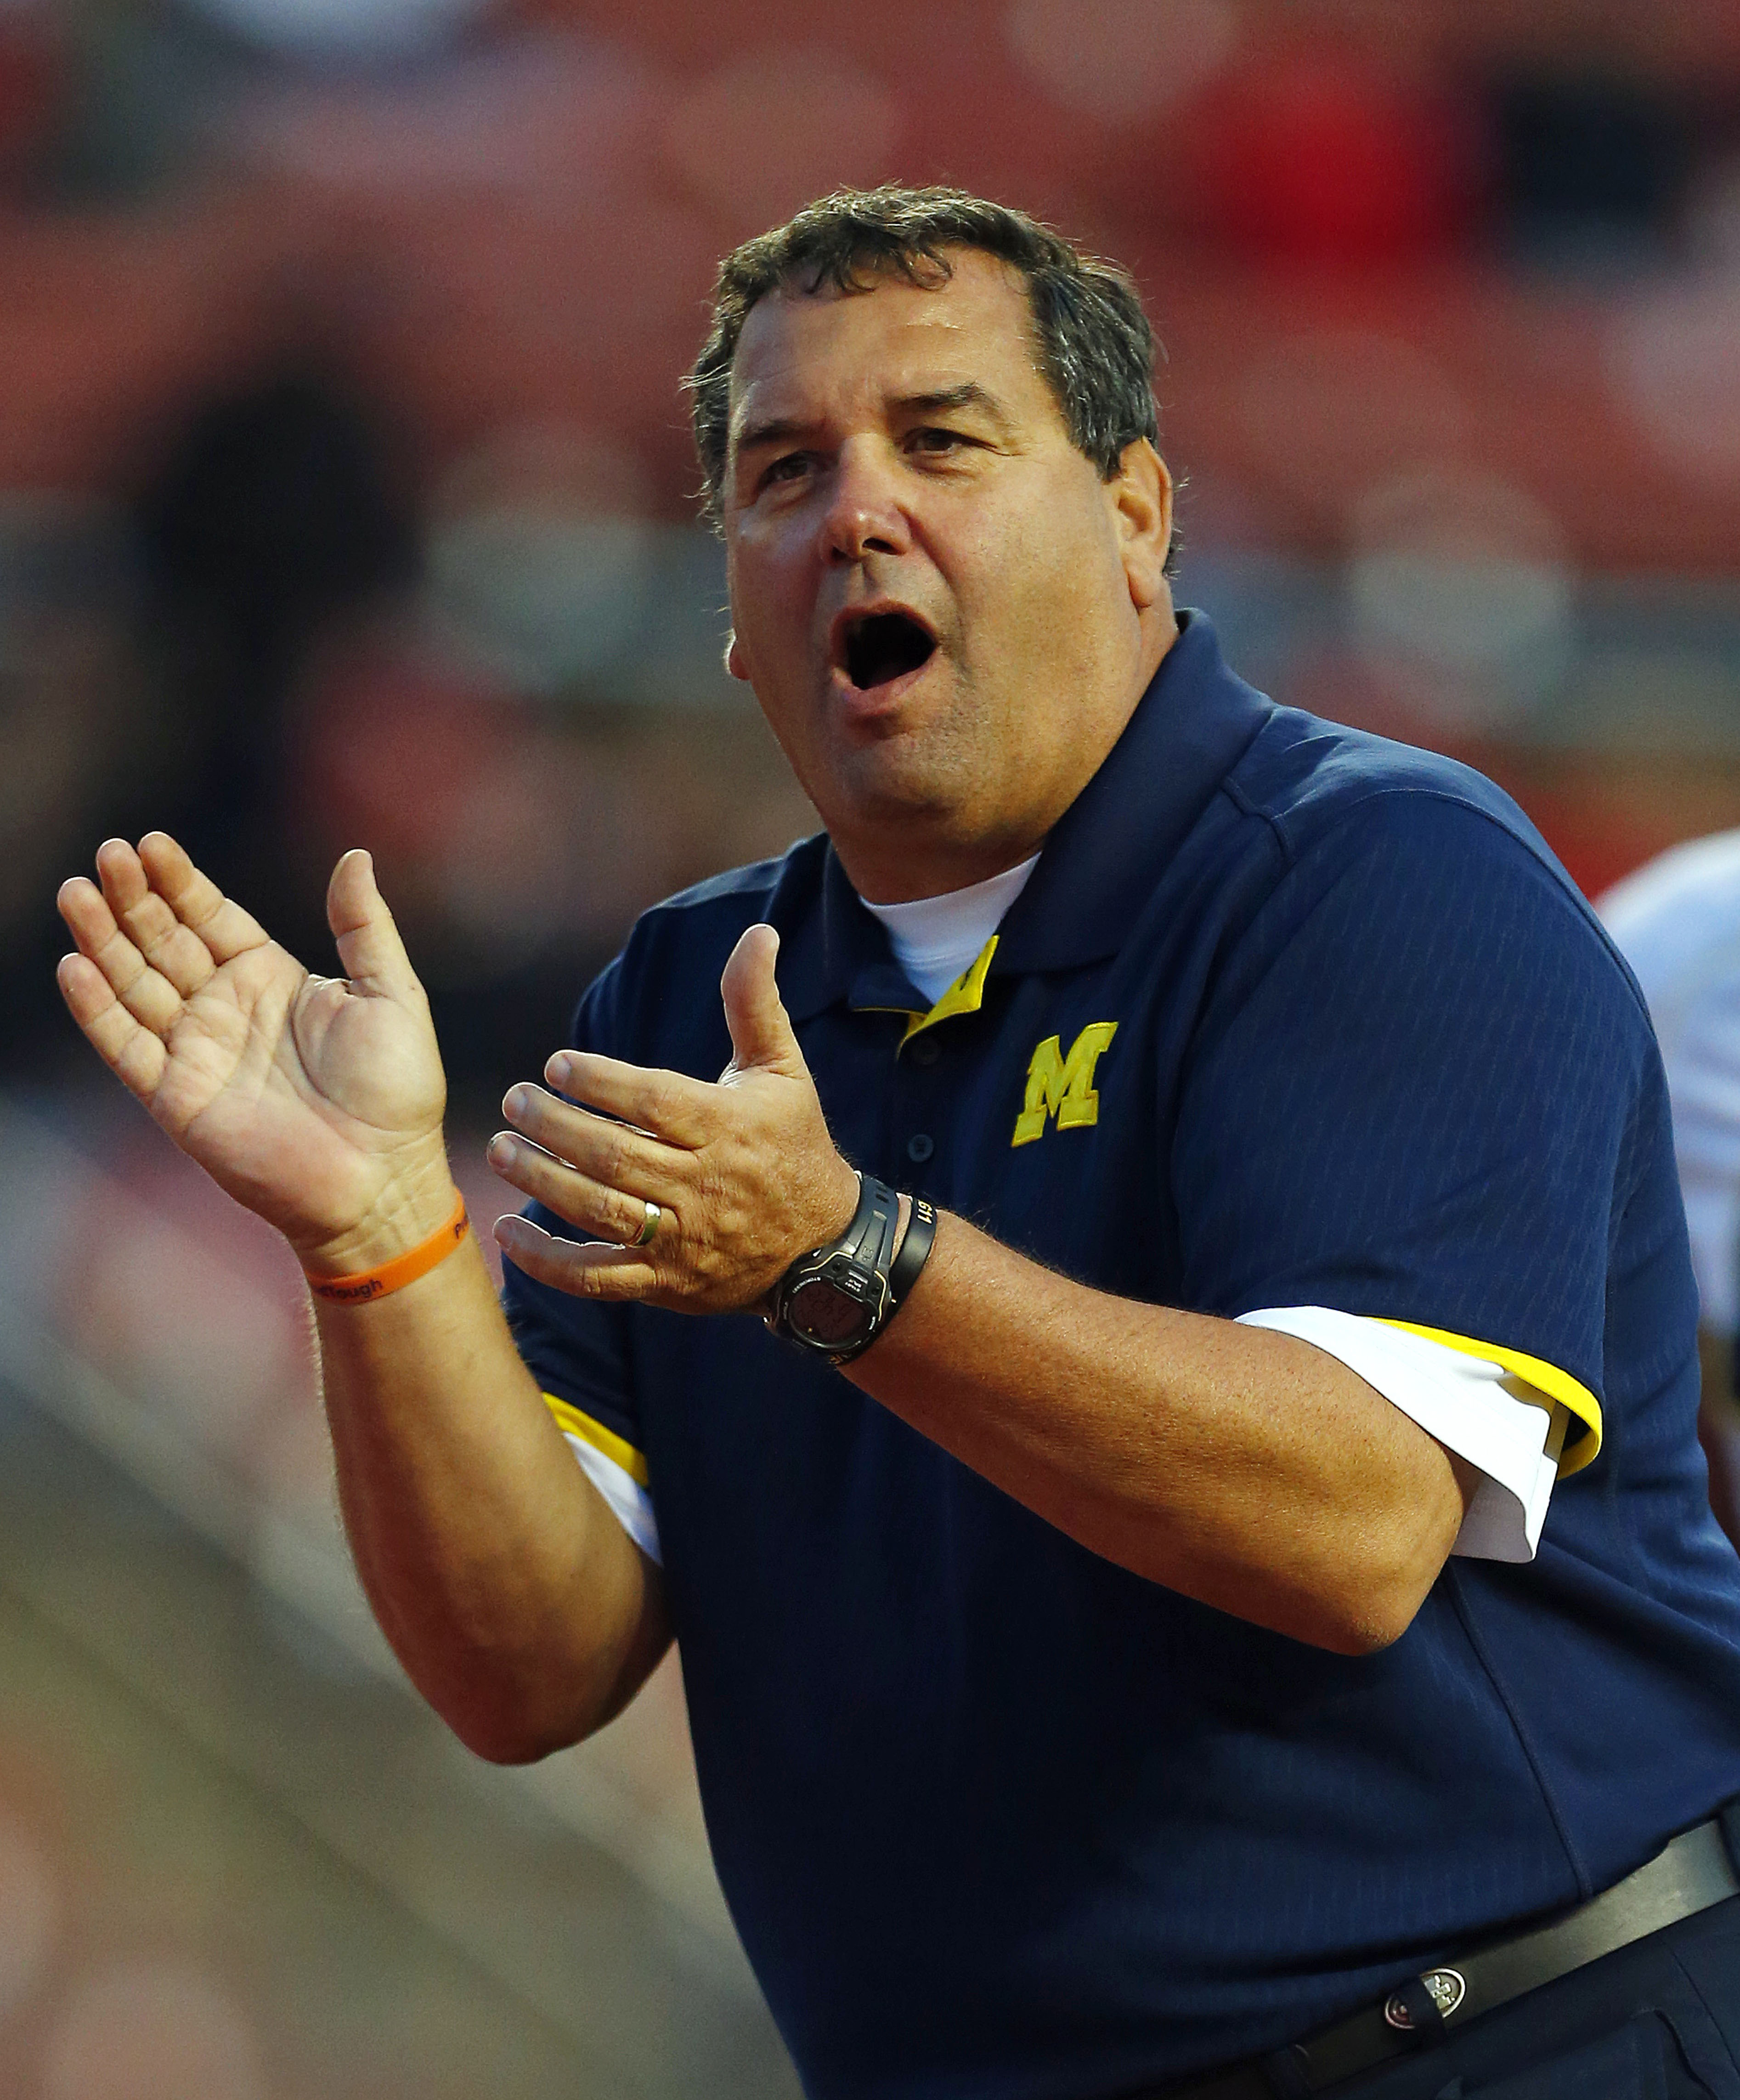 FILE - In this Oct. 4, 2014, file photo, Michigan head coach Brady Hoke looks on before an NCAA college football game against Rutgers in Piscataway, N.J. A person with knowledge of the situation says embattled Michigan football coach Brady Hoke and interim athletic director Jim Hackett are set to meet on Tuesday, Dec. 2, 2014. The person spoke on condition of anonymity because the school has not made any announcement about the meeting.(AP Photo/Rich Schultz, File)